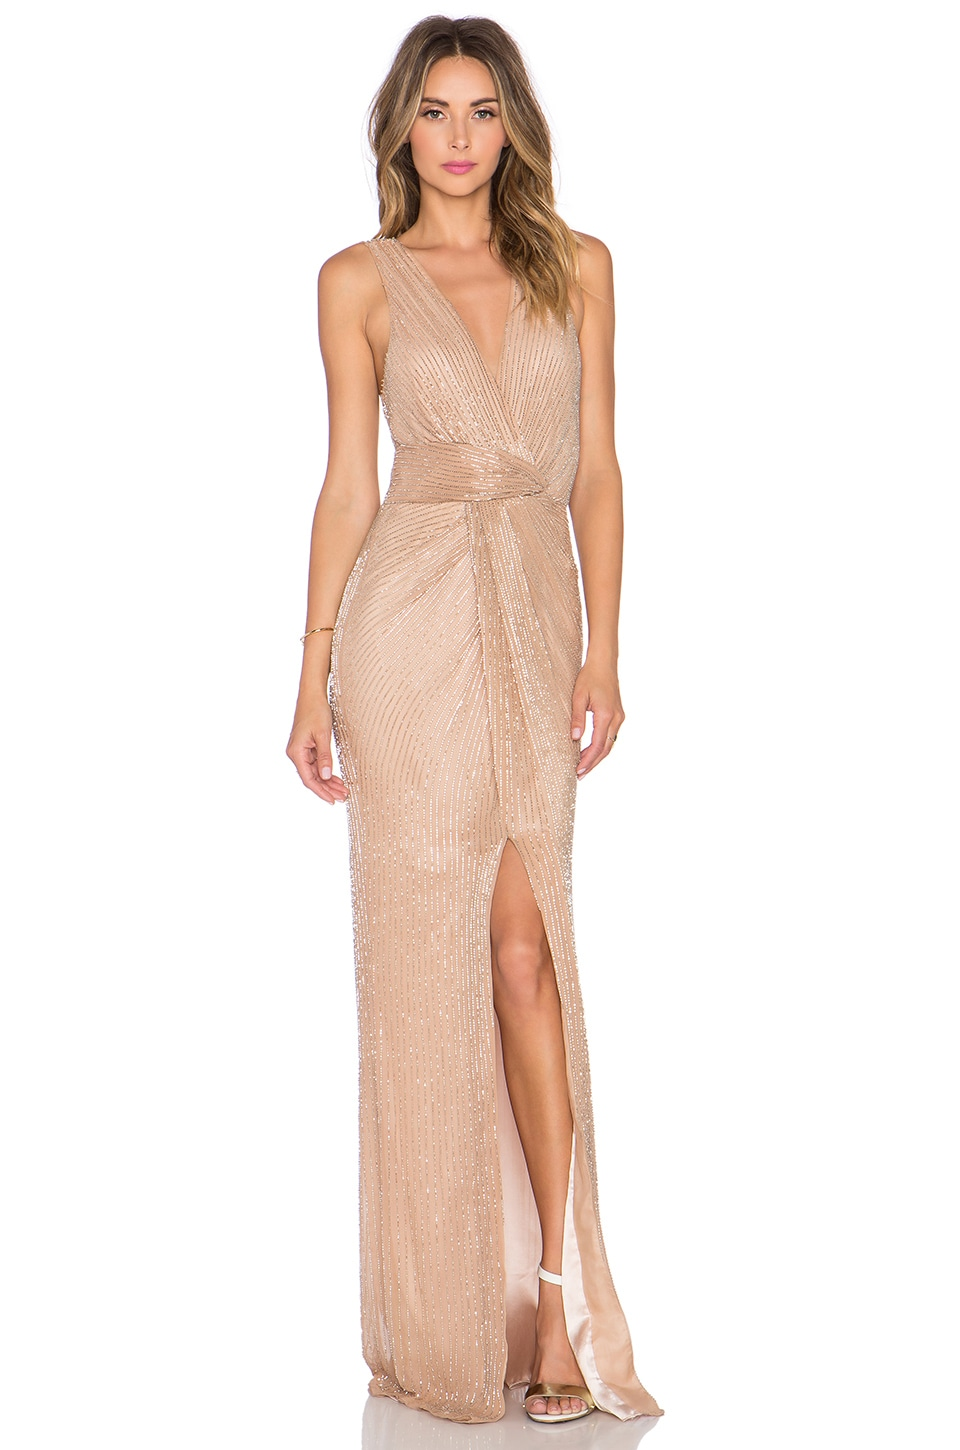 Parker Black Monarch Dress in Blush